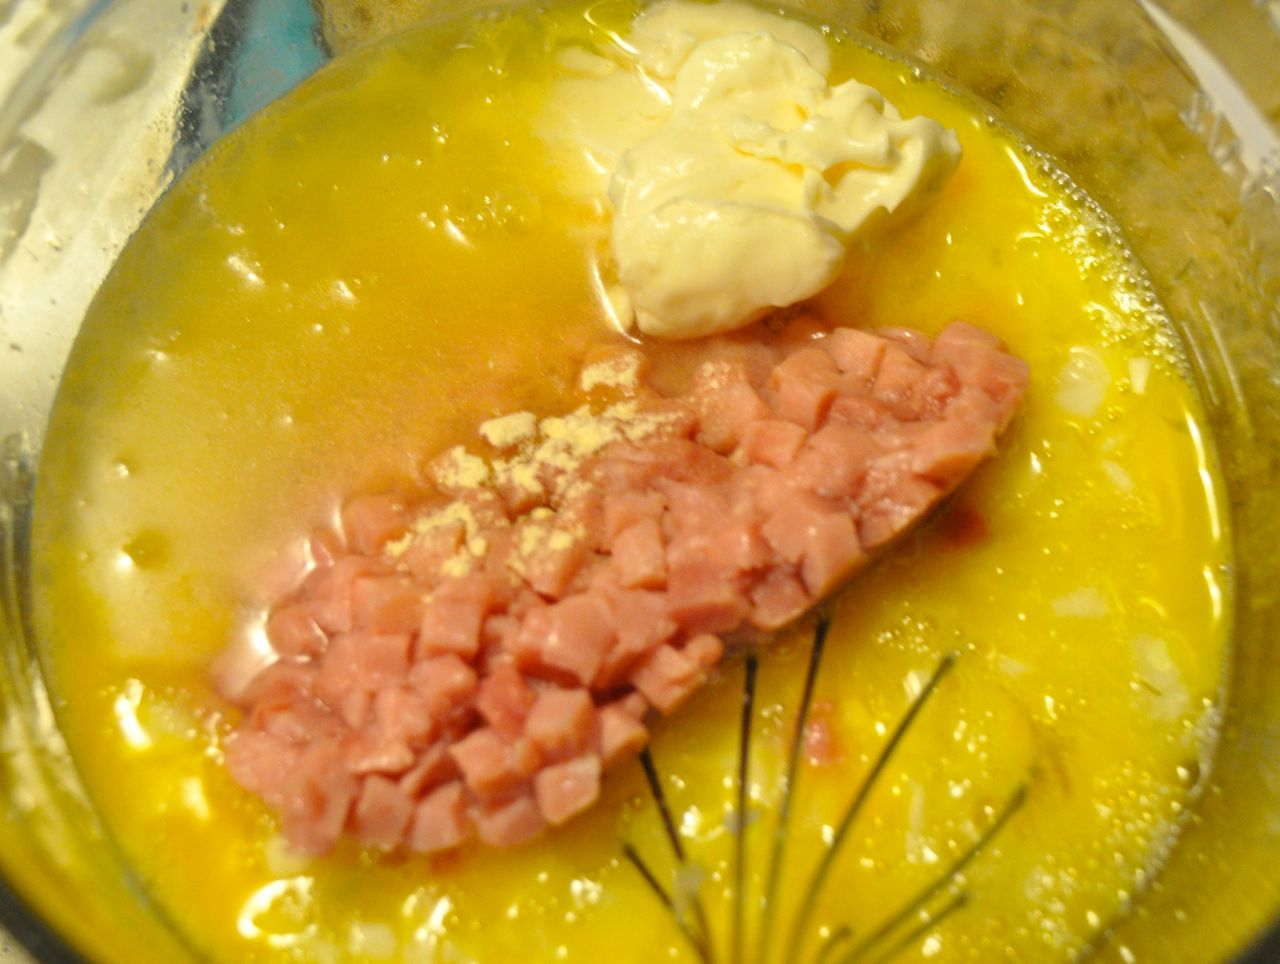 onion ham water mayo in eggs